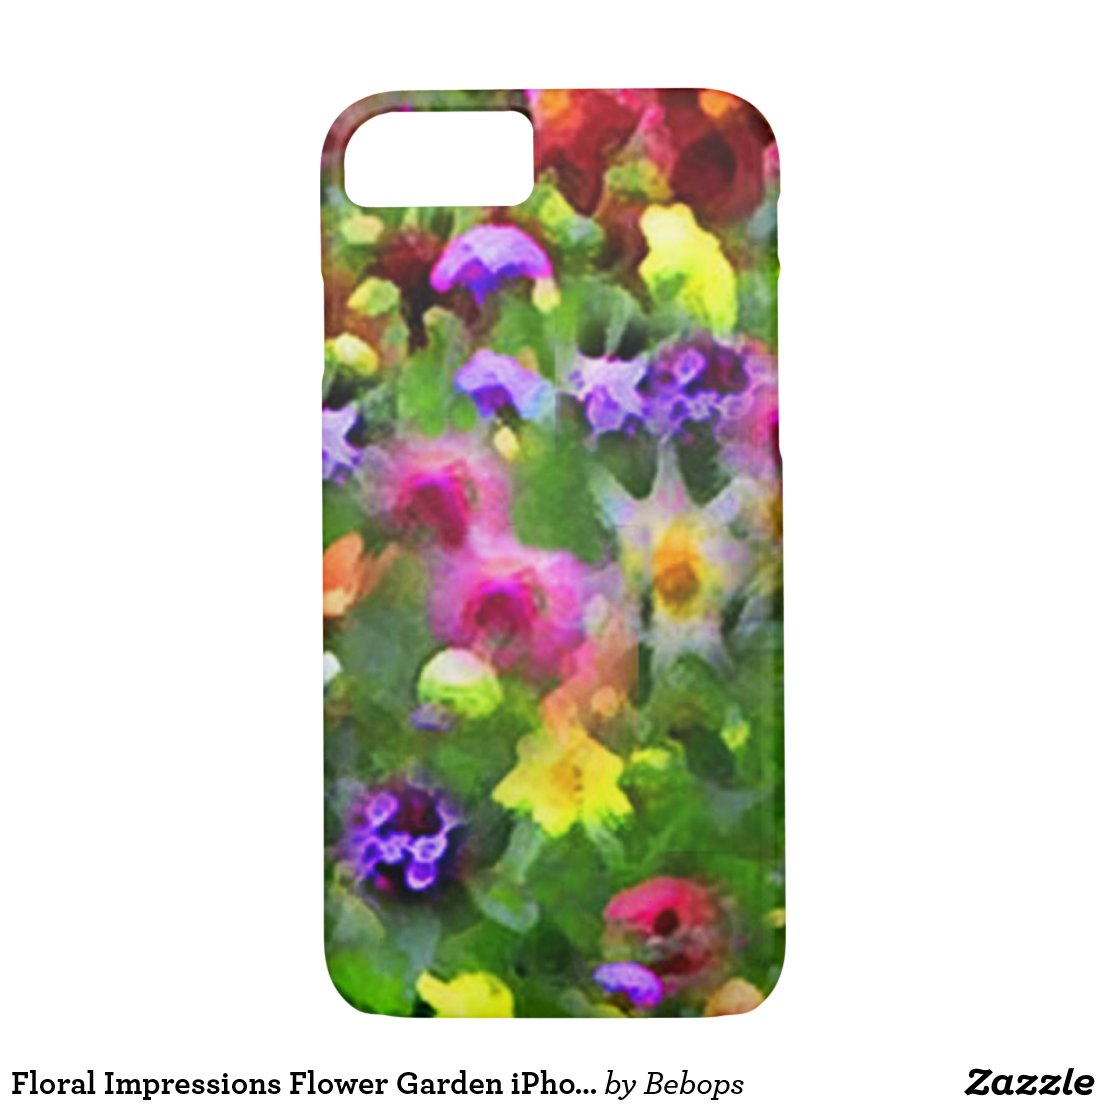 Floral Impressions Flower Garden iPhone 7 Case